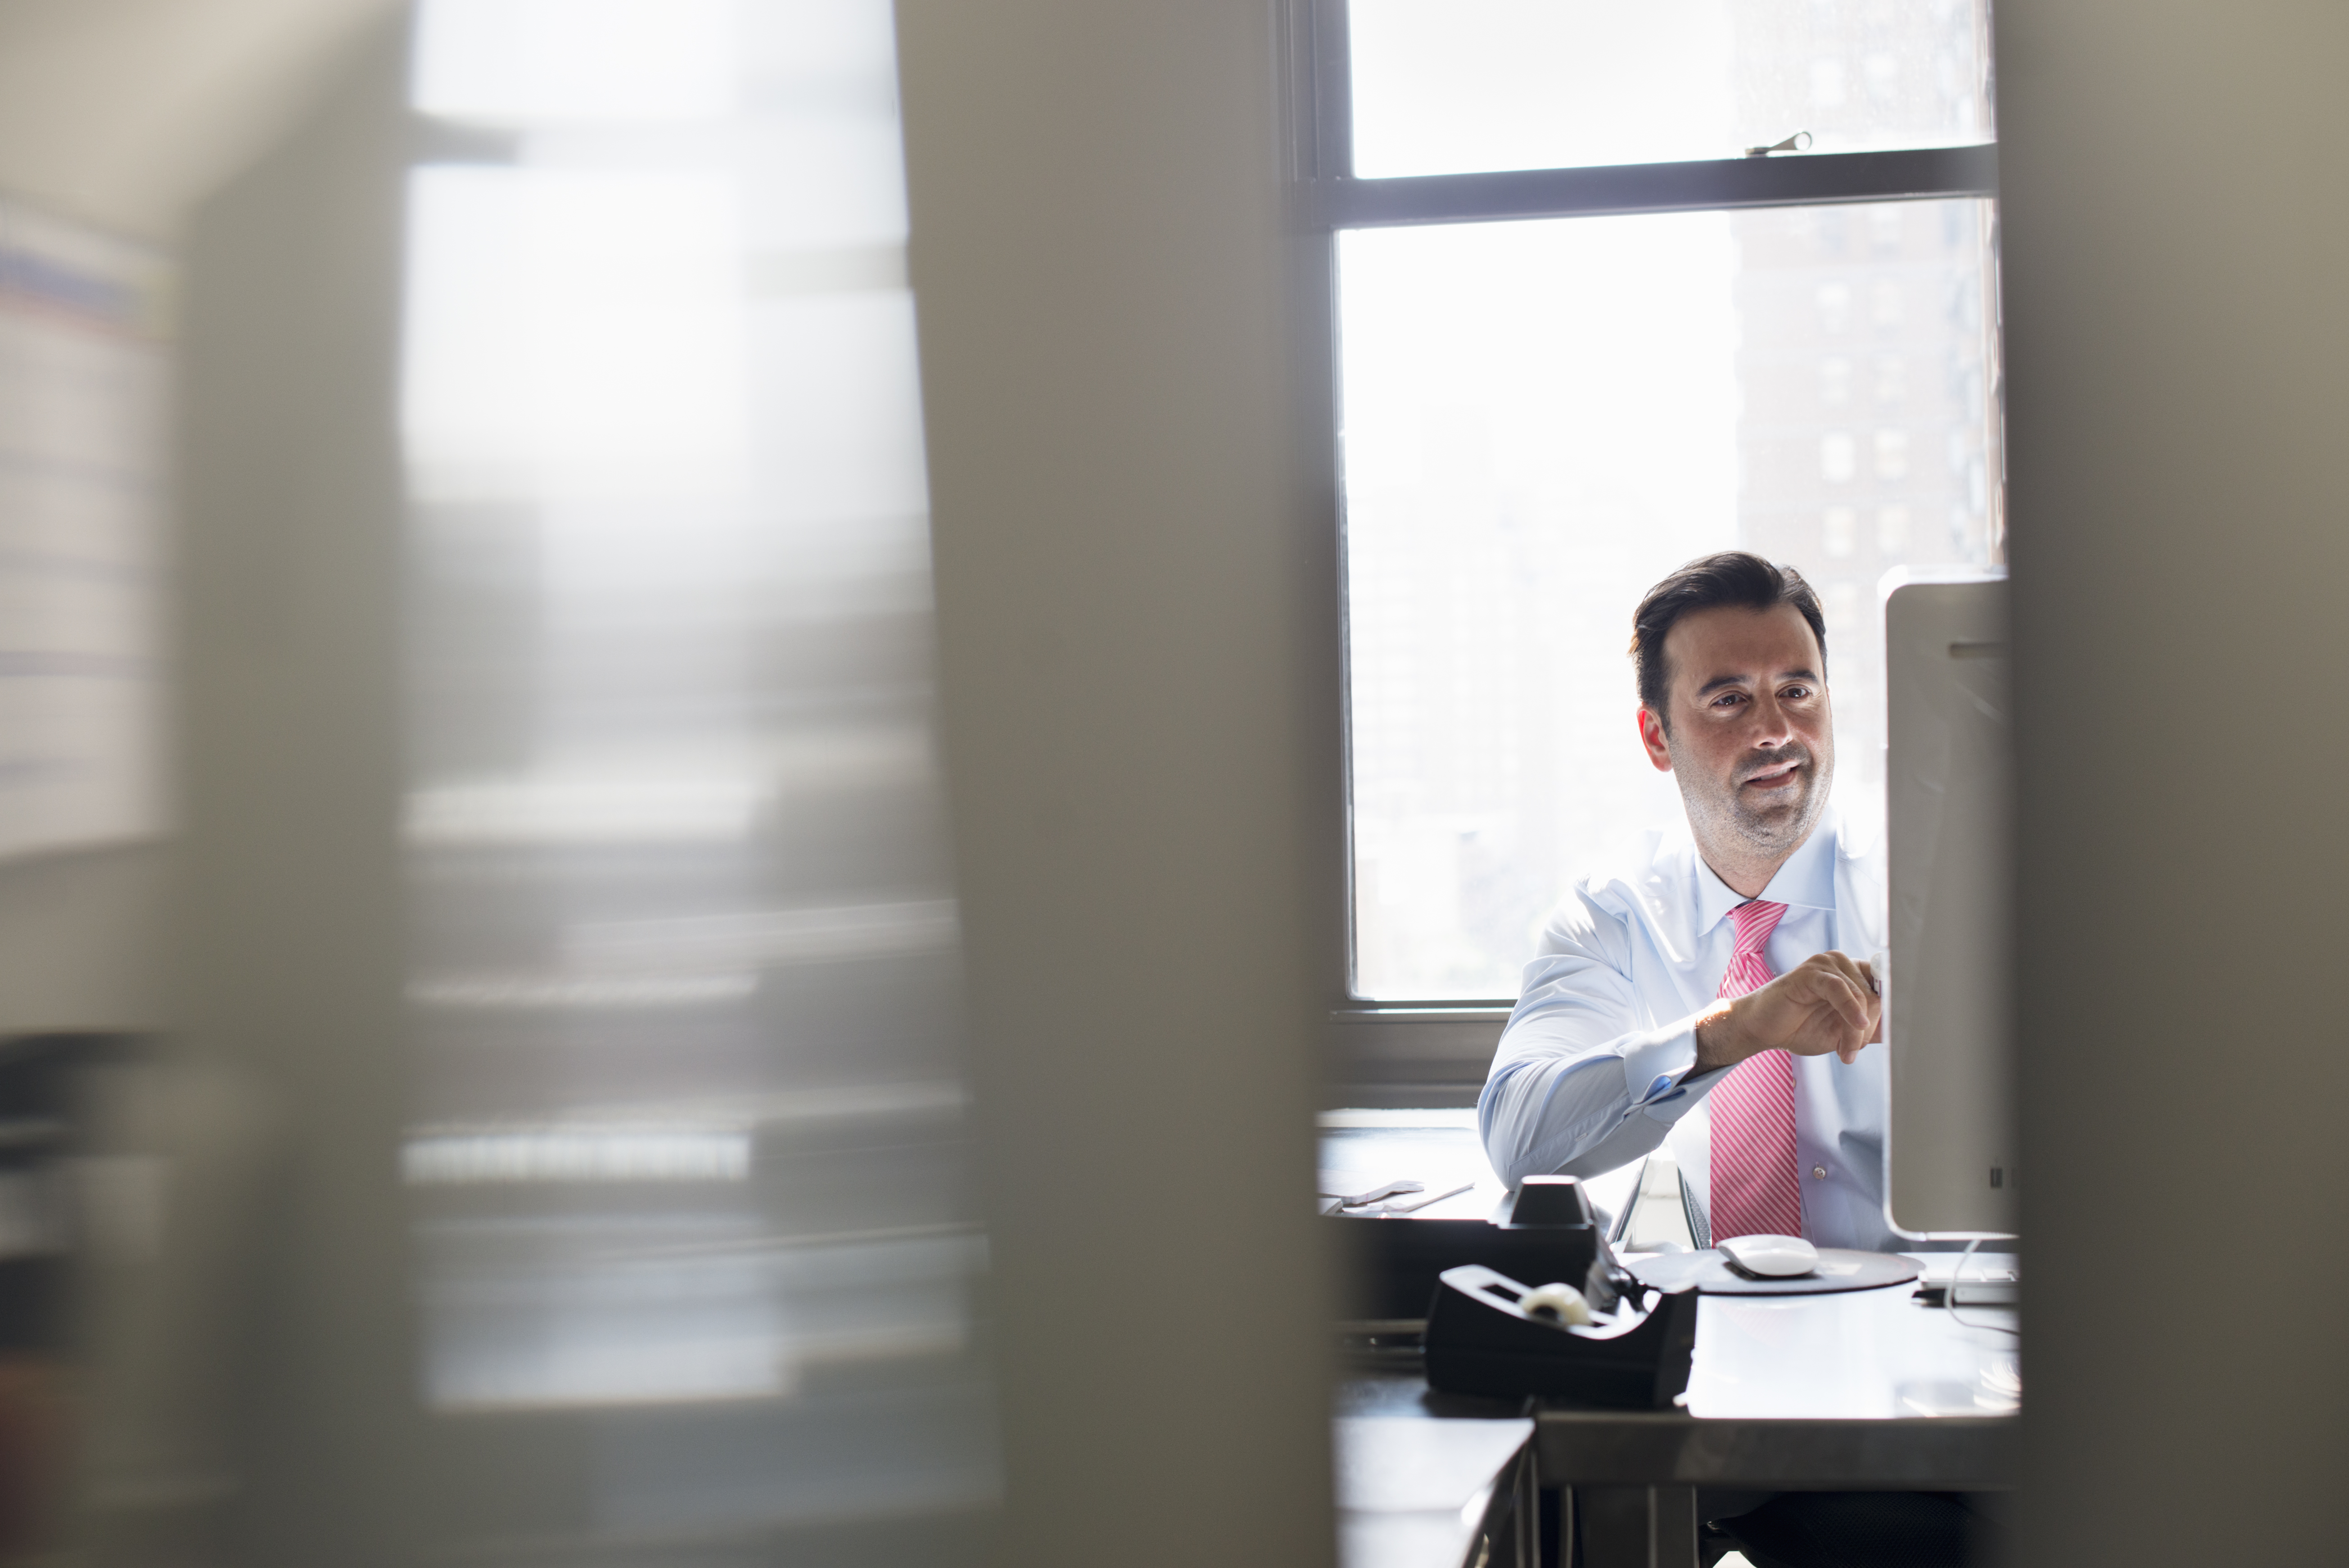 security-risk-a-man-in-shirt-and-tie-seated-at-a-desk-looking-at